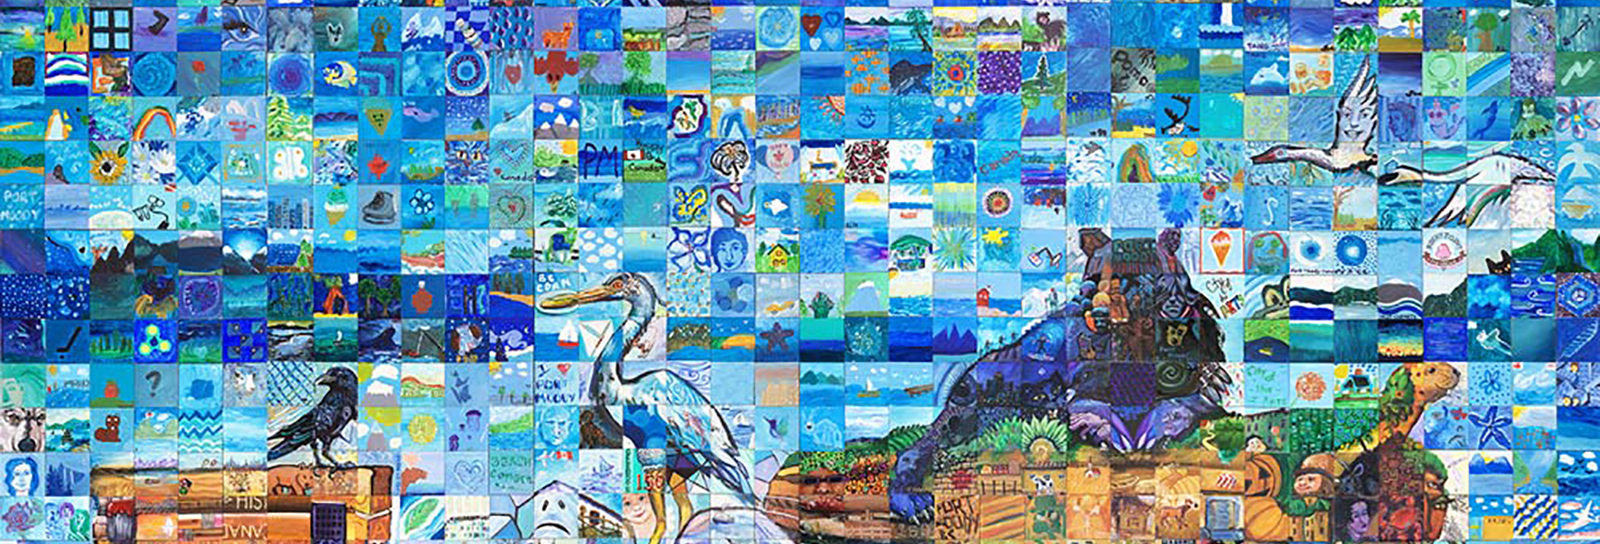 mosaic art featuring wildlife